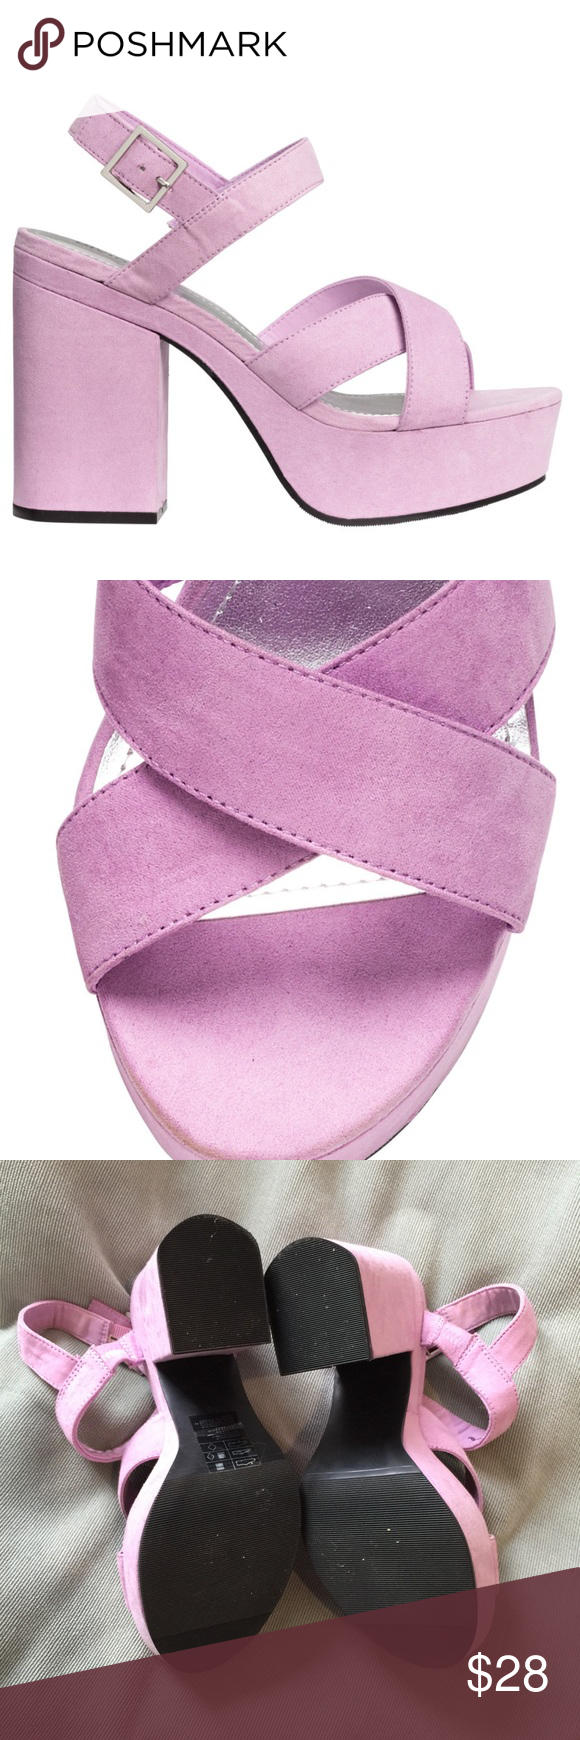 Gorgeous Purple Platform Sandals Foreground purple-ish platform sandals only worn once for an indoor photo shoot.  Love these, perfect for summer, I have another pair in black I wear constantly.  I find them very comfortable for a day or night out. Shoes Platforms